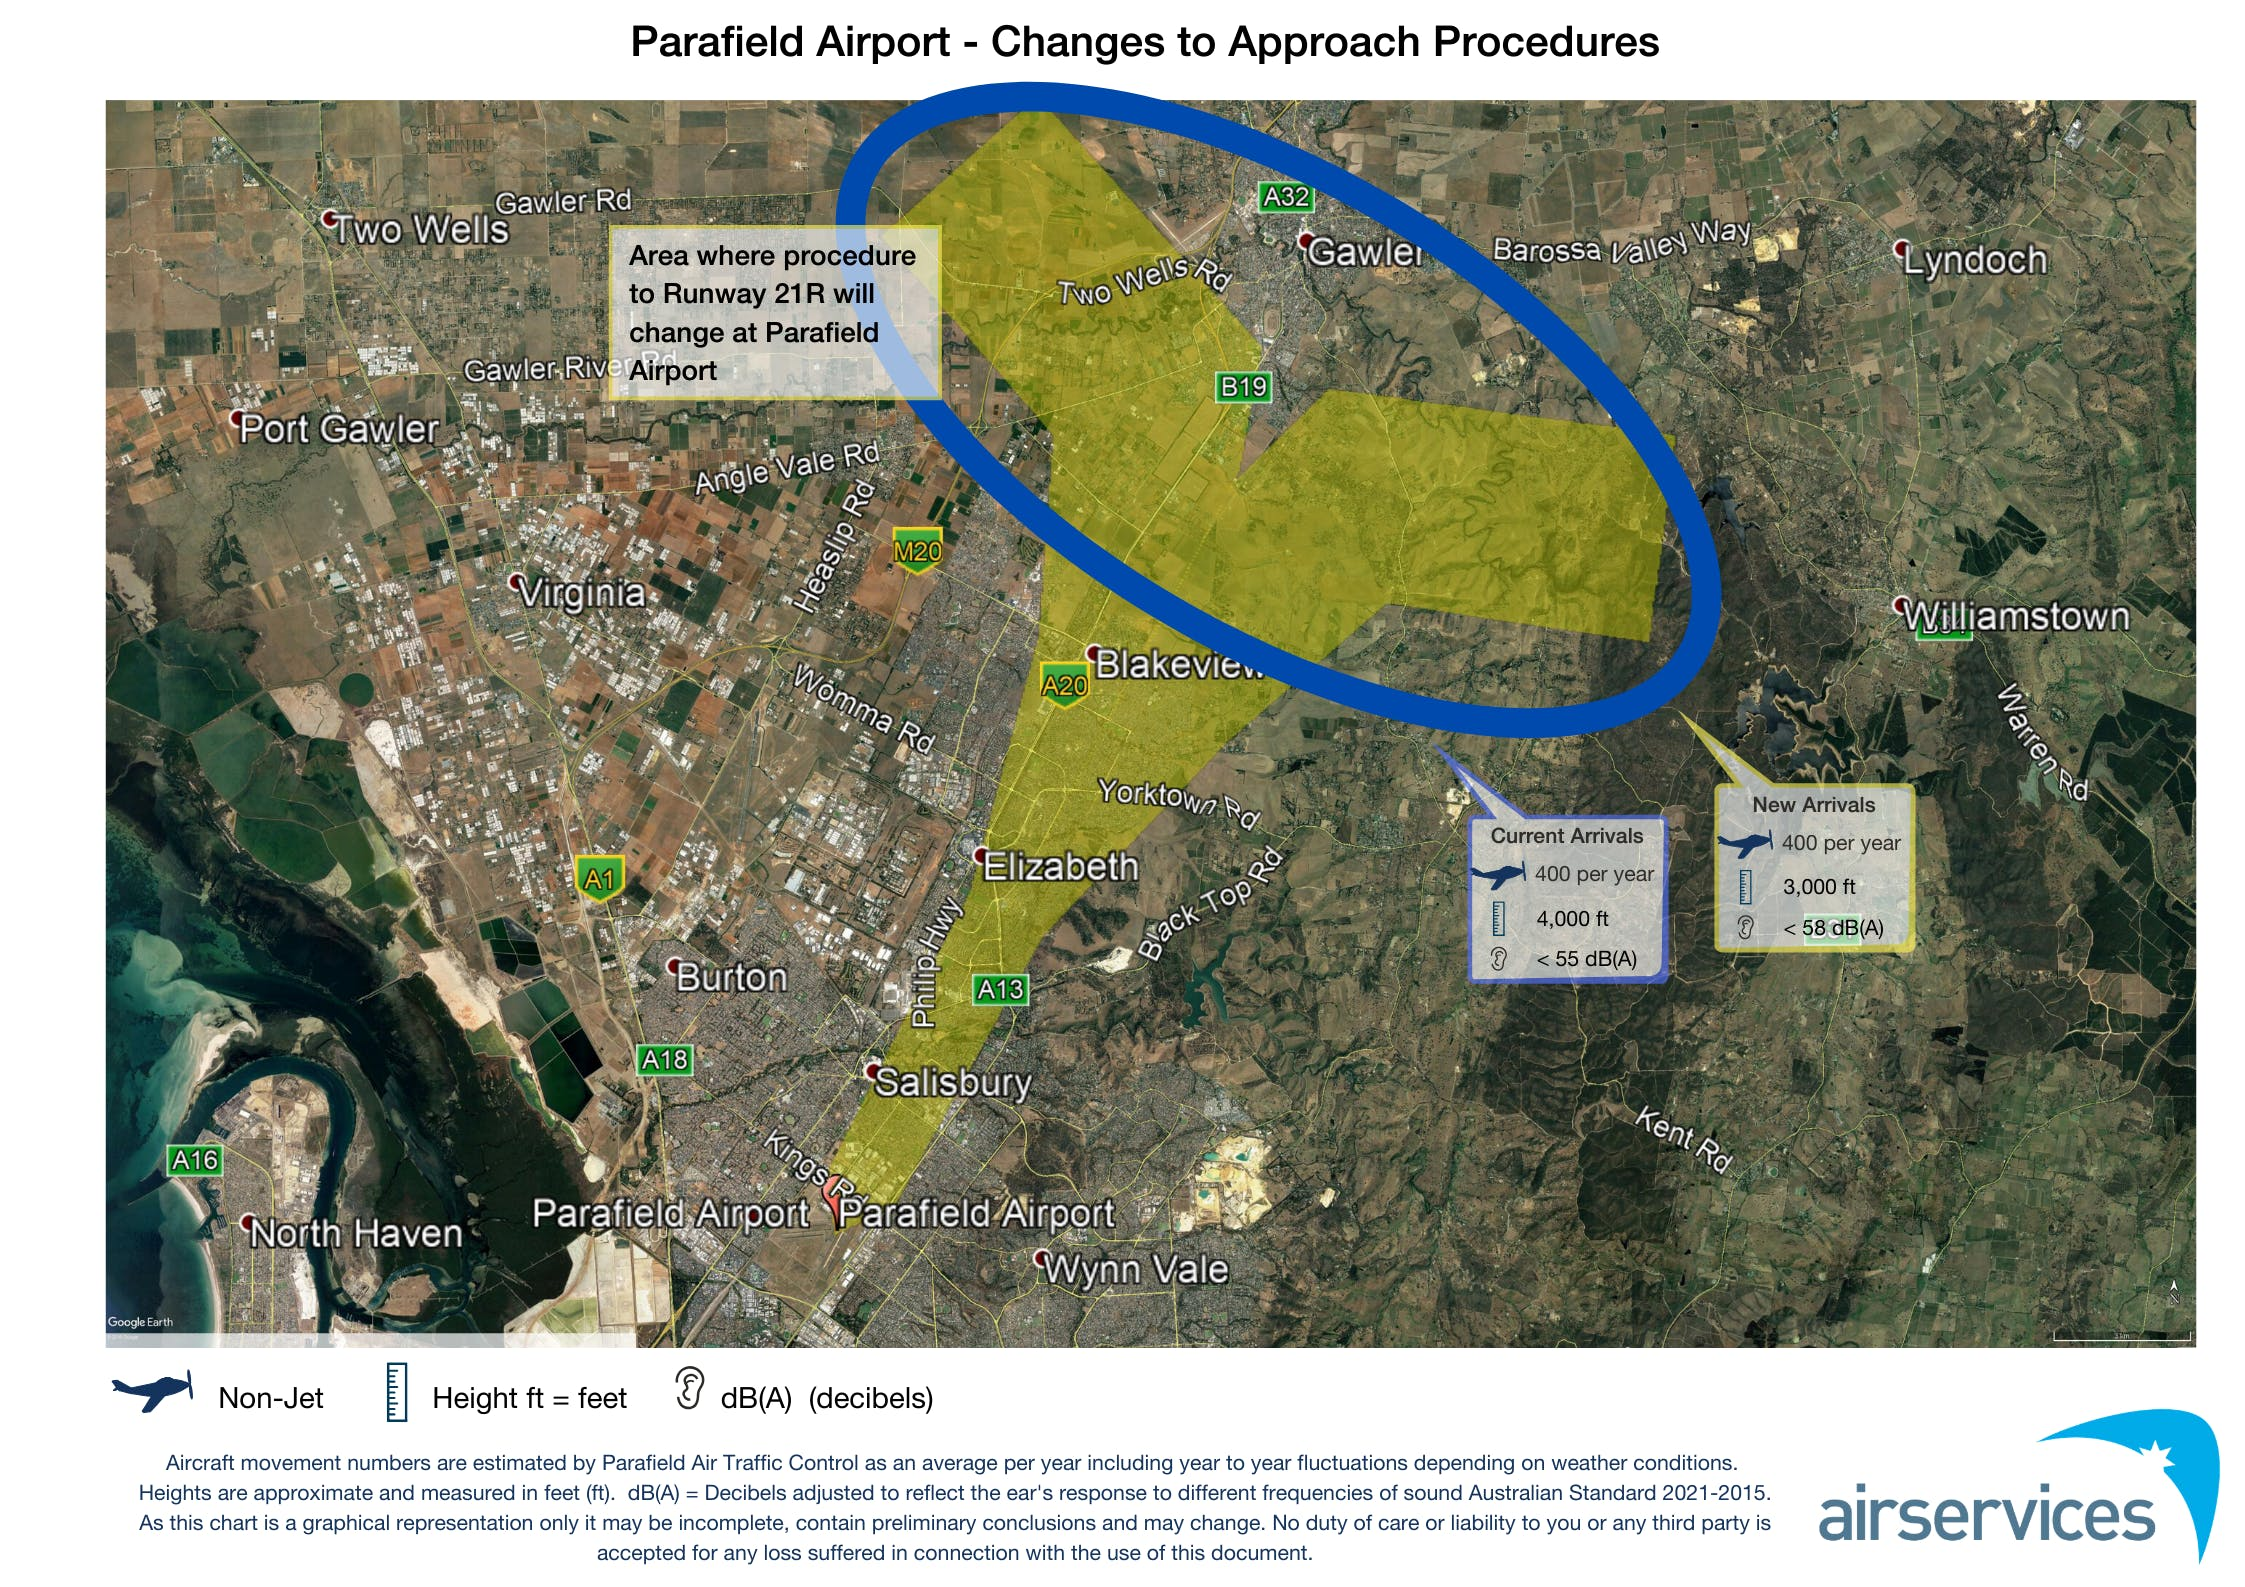 Parafield Airport Changes to Approach Procedures (May 2020)